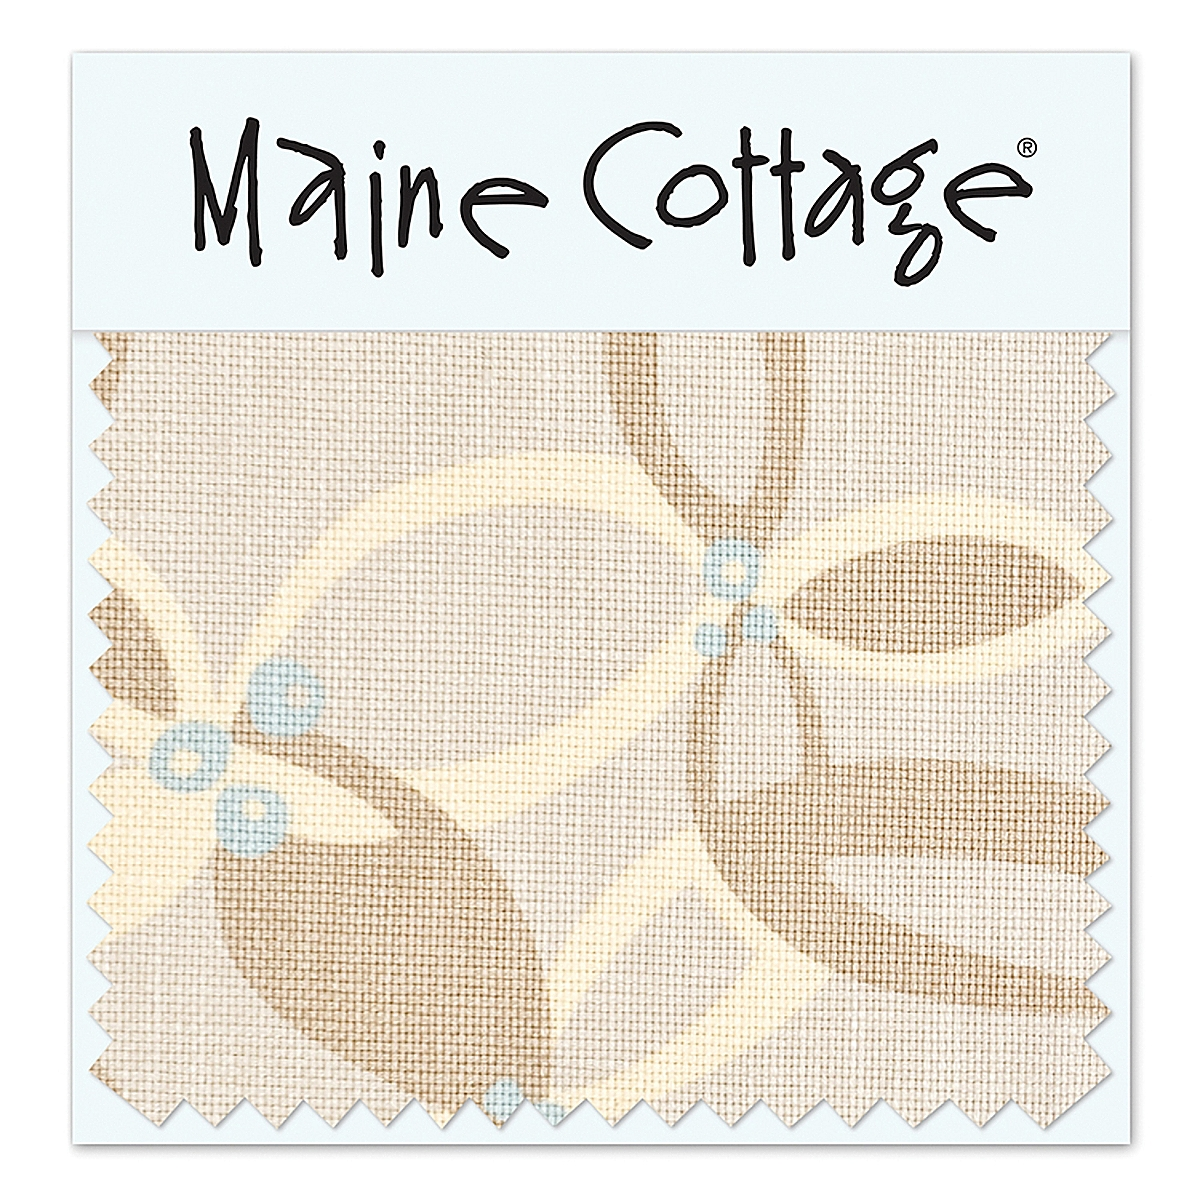 Gimme-A-Ring: Ivory (swatch card)